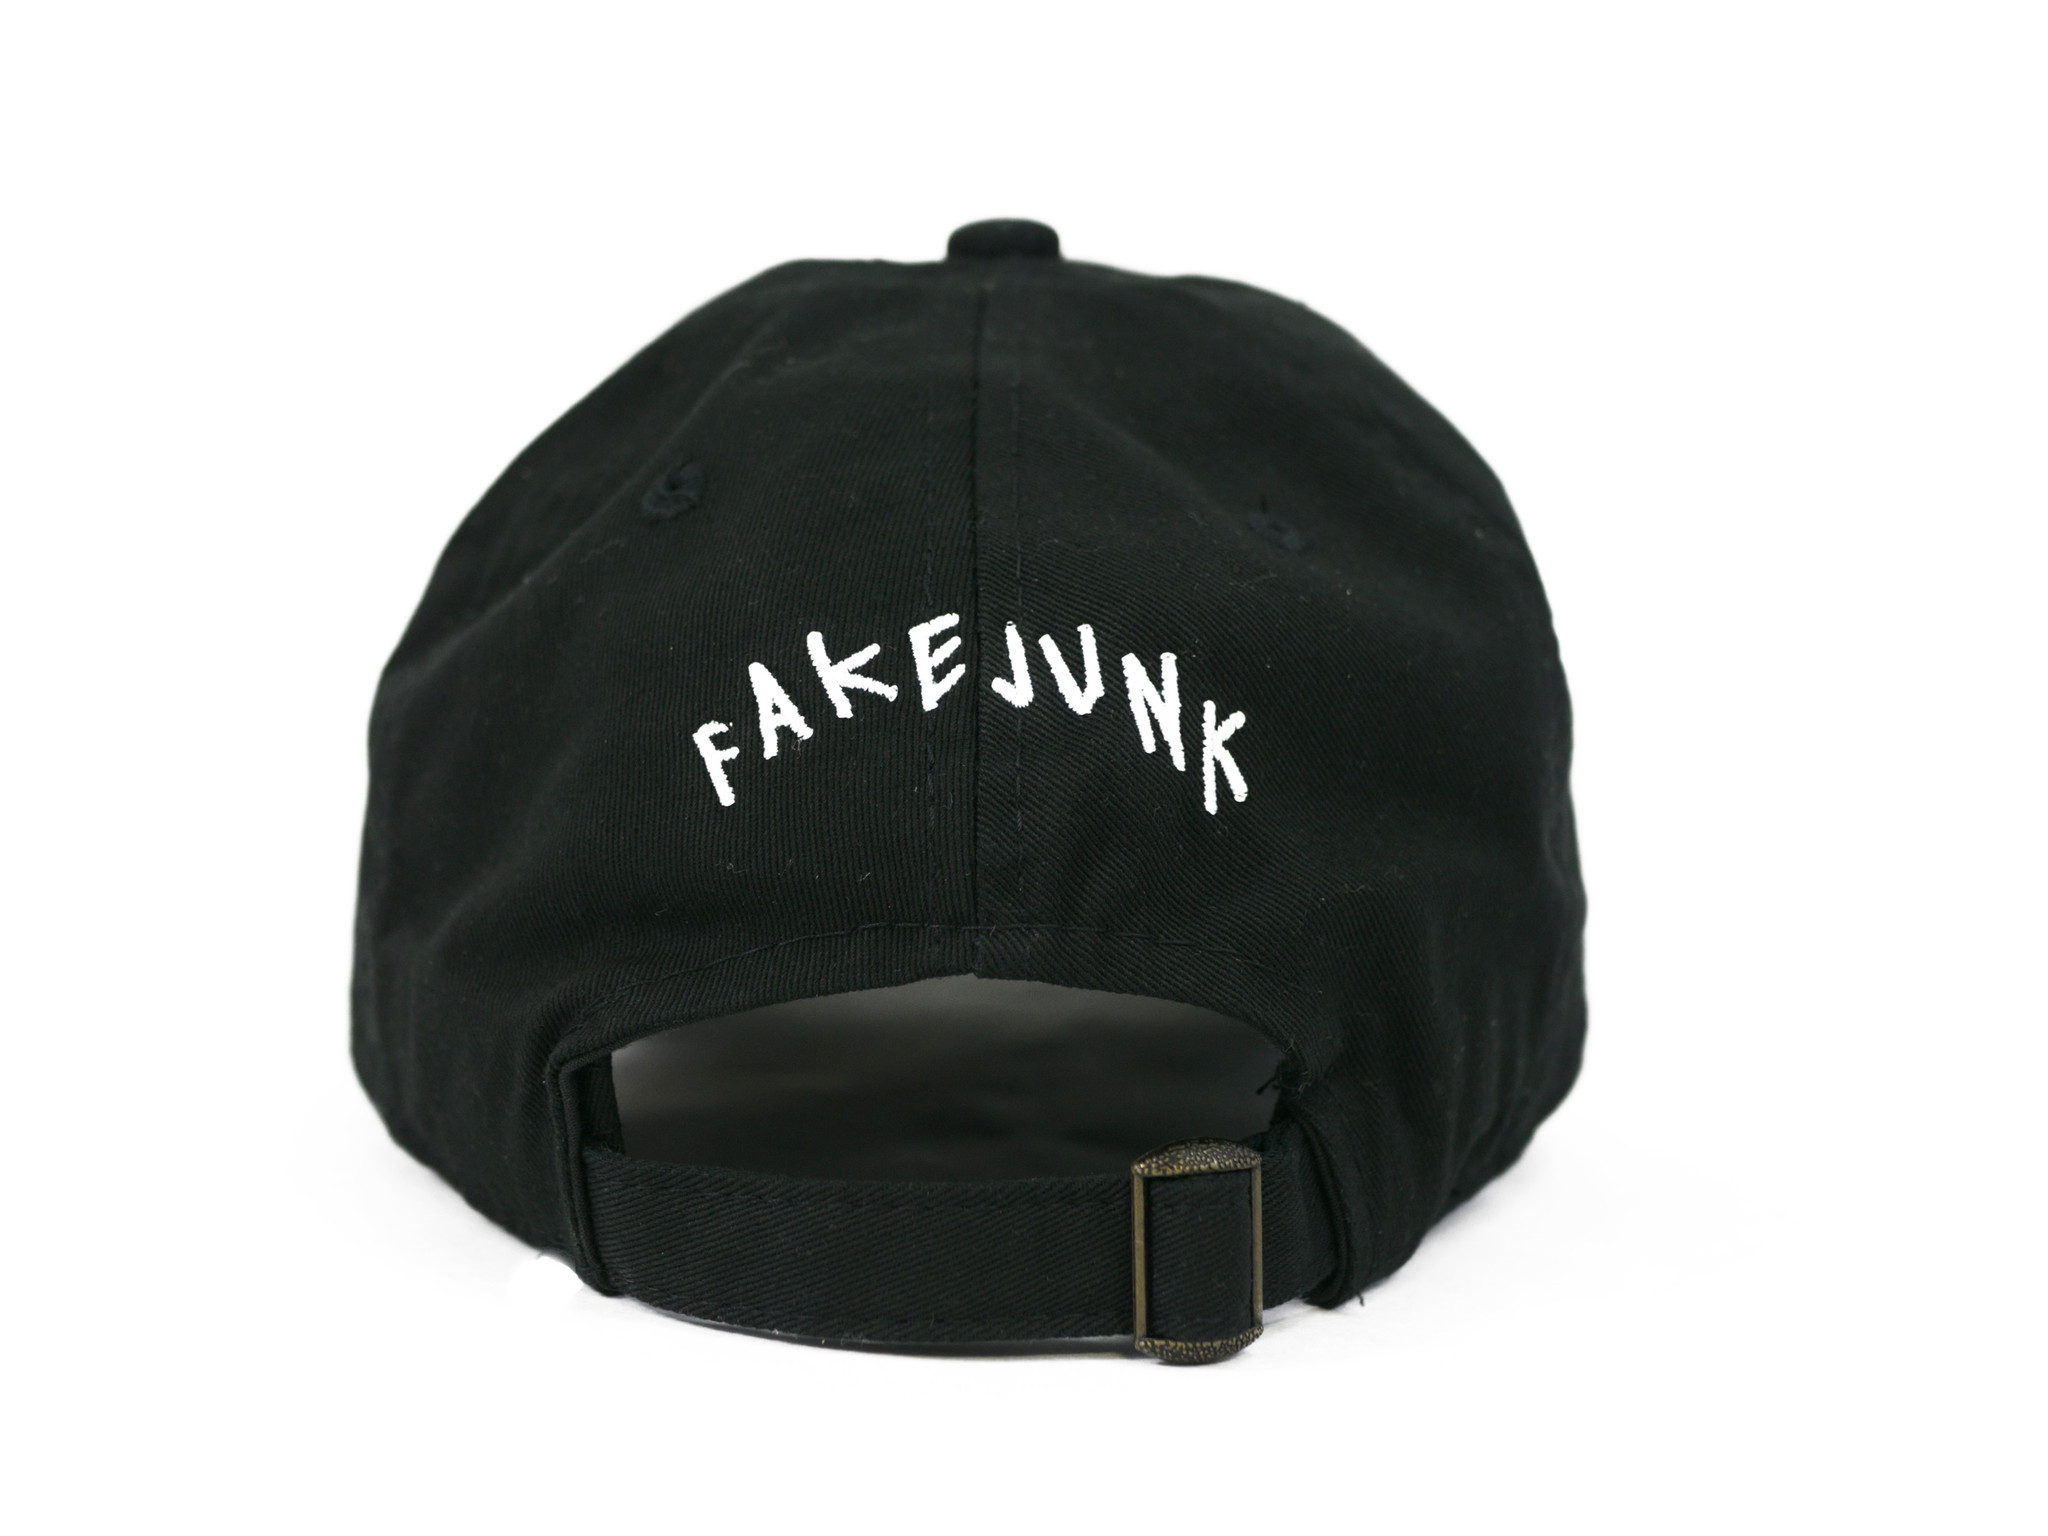 67664b2fd6c FAKE JUNK FAKE JUNK LOGO DAD HAT BLACK